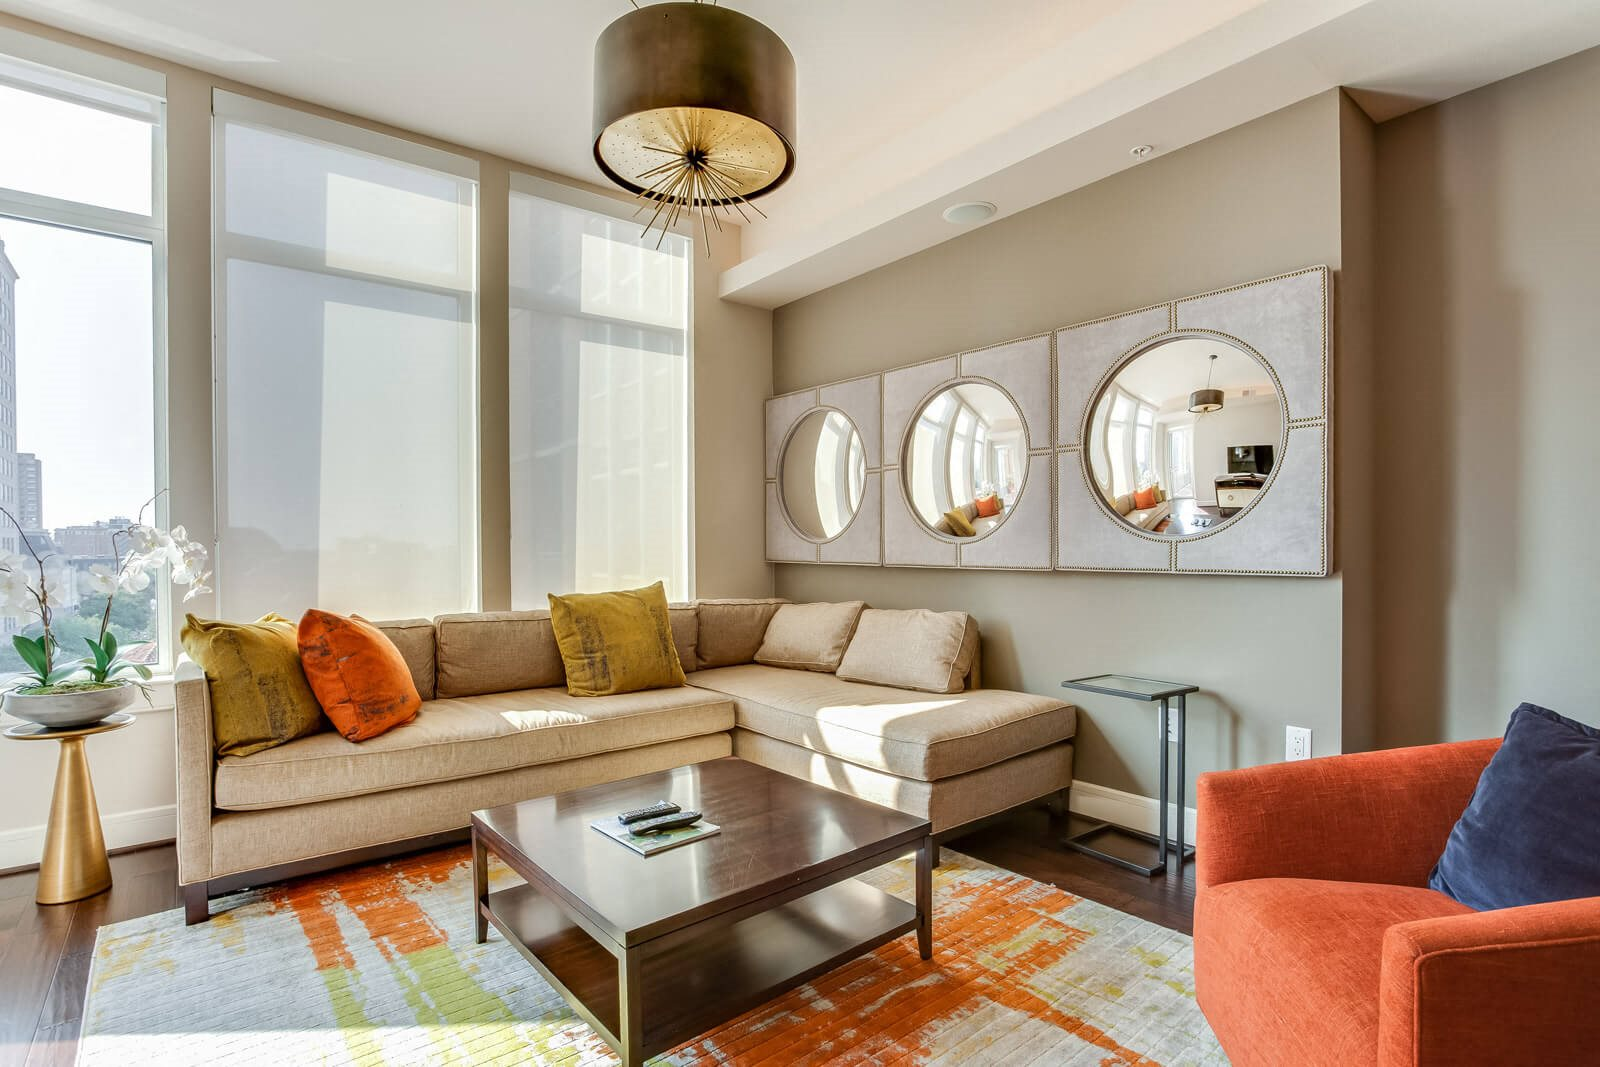 Floor-To-Ceiling Windows with Solar Shades at The Jordan by Windsor, Dallas, Texas